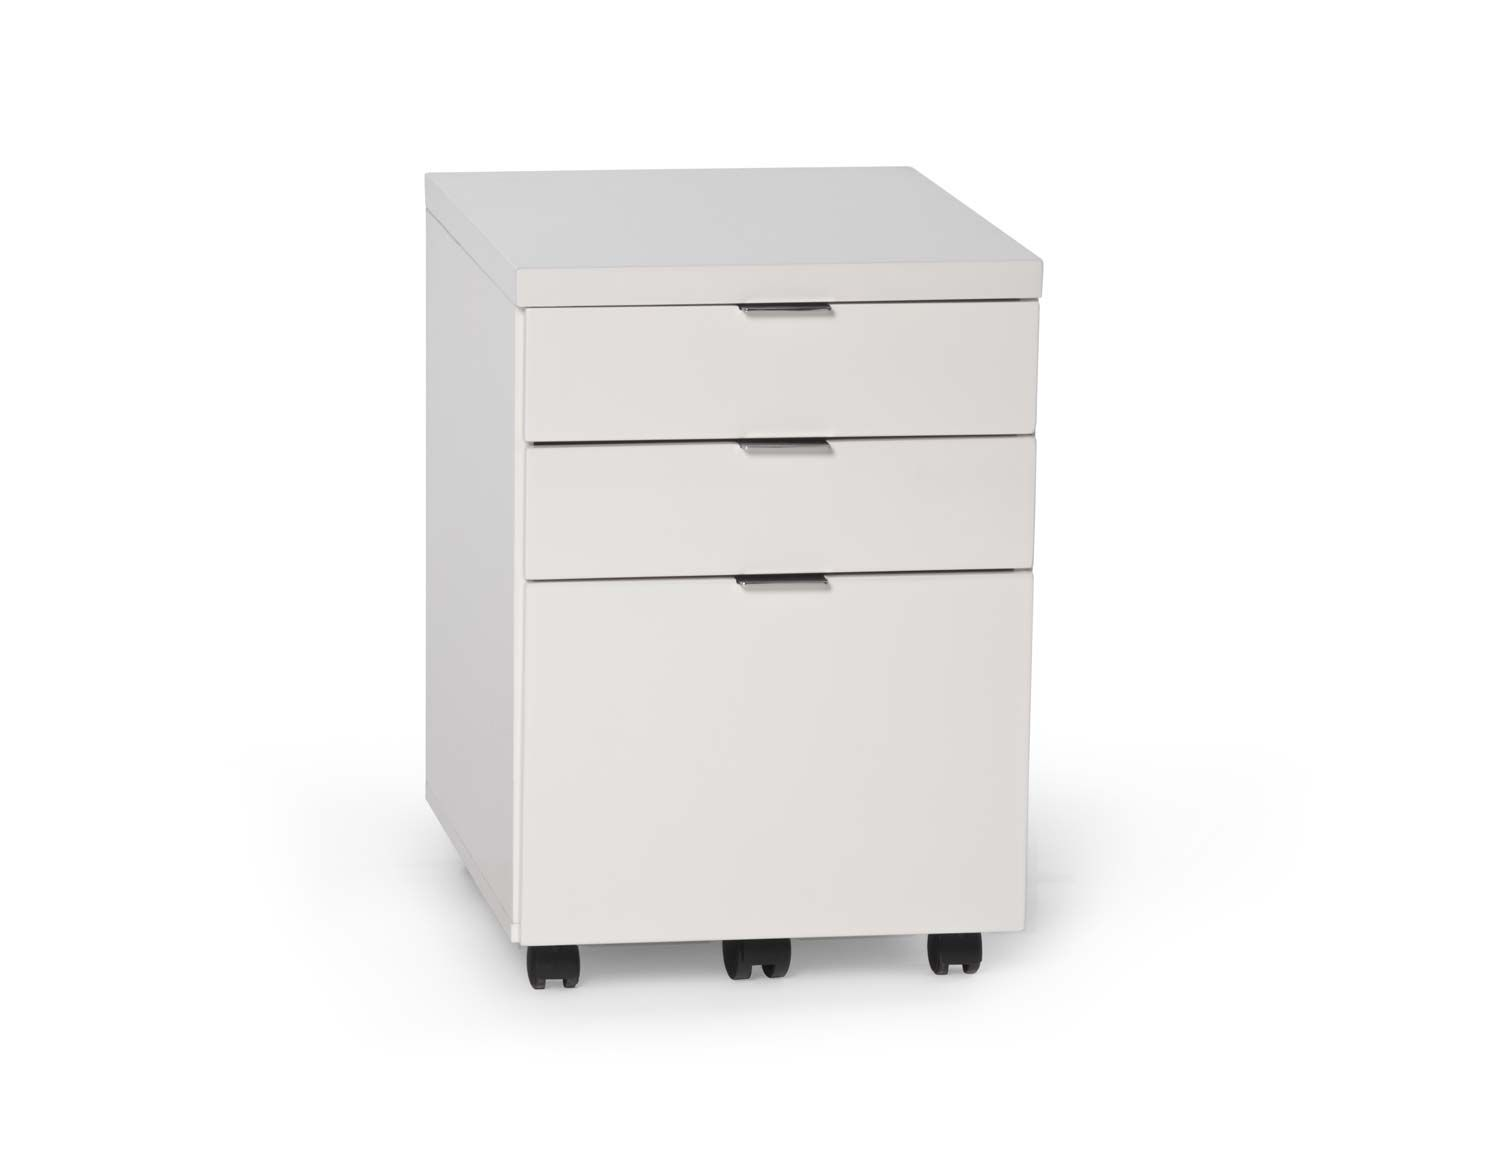 lacquer white axis miami in custom storage file fancybox mobile gloss cabinet finish modern